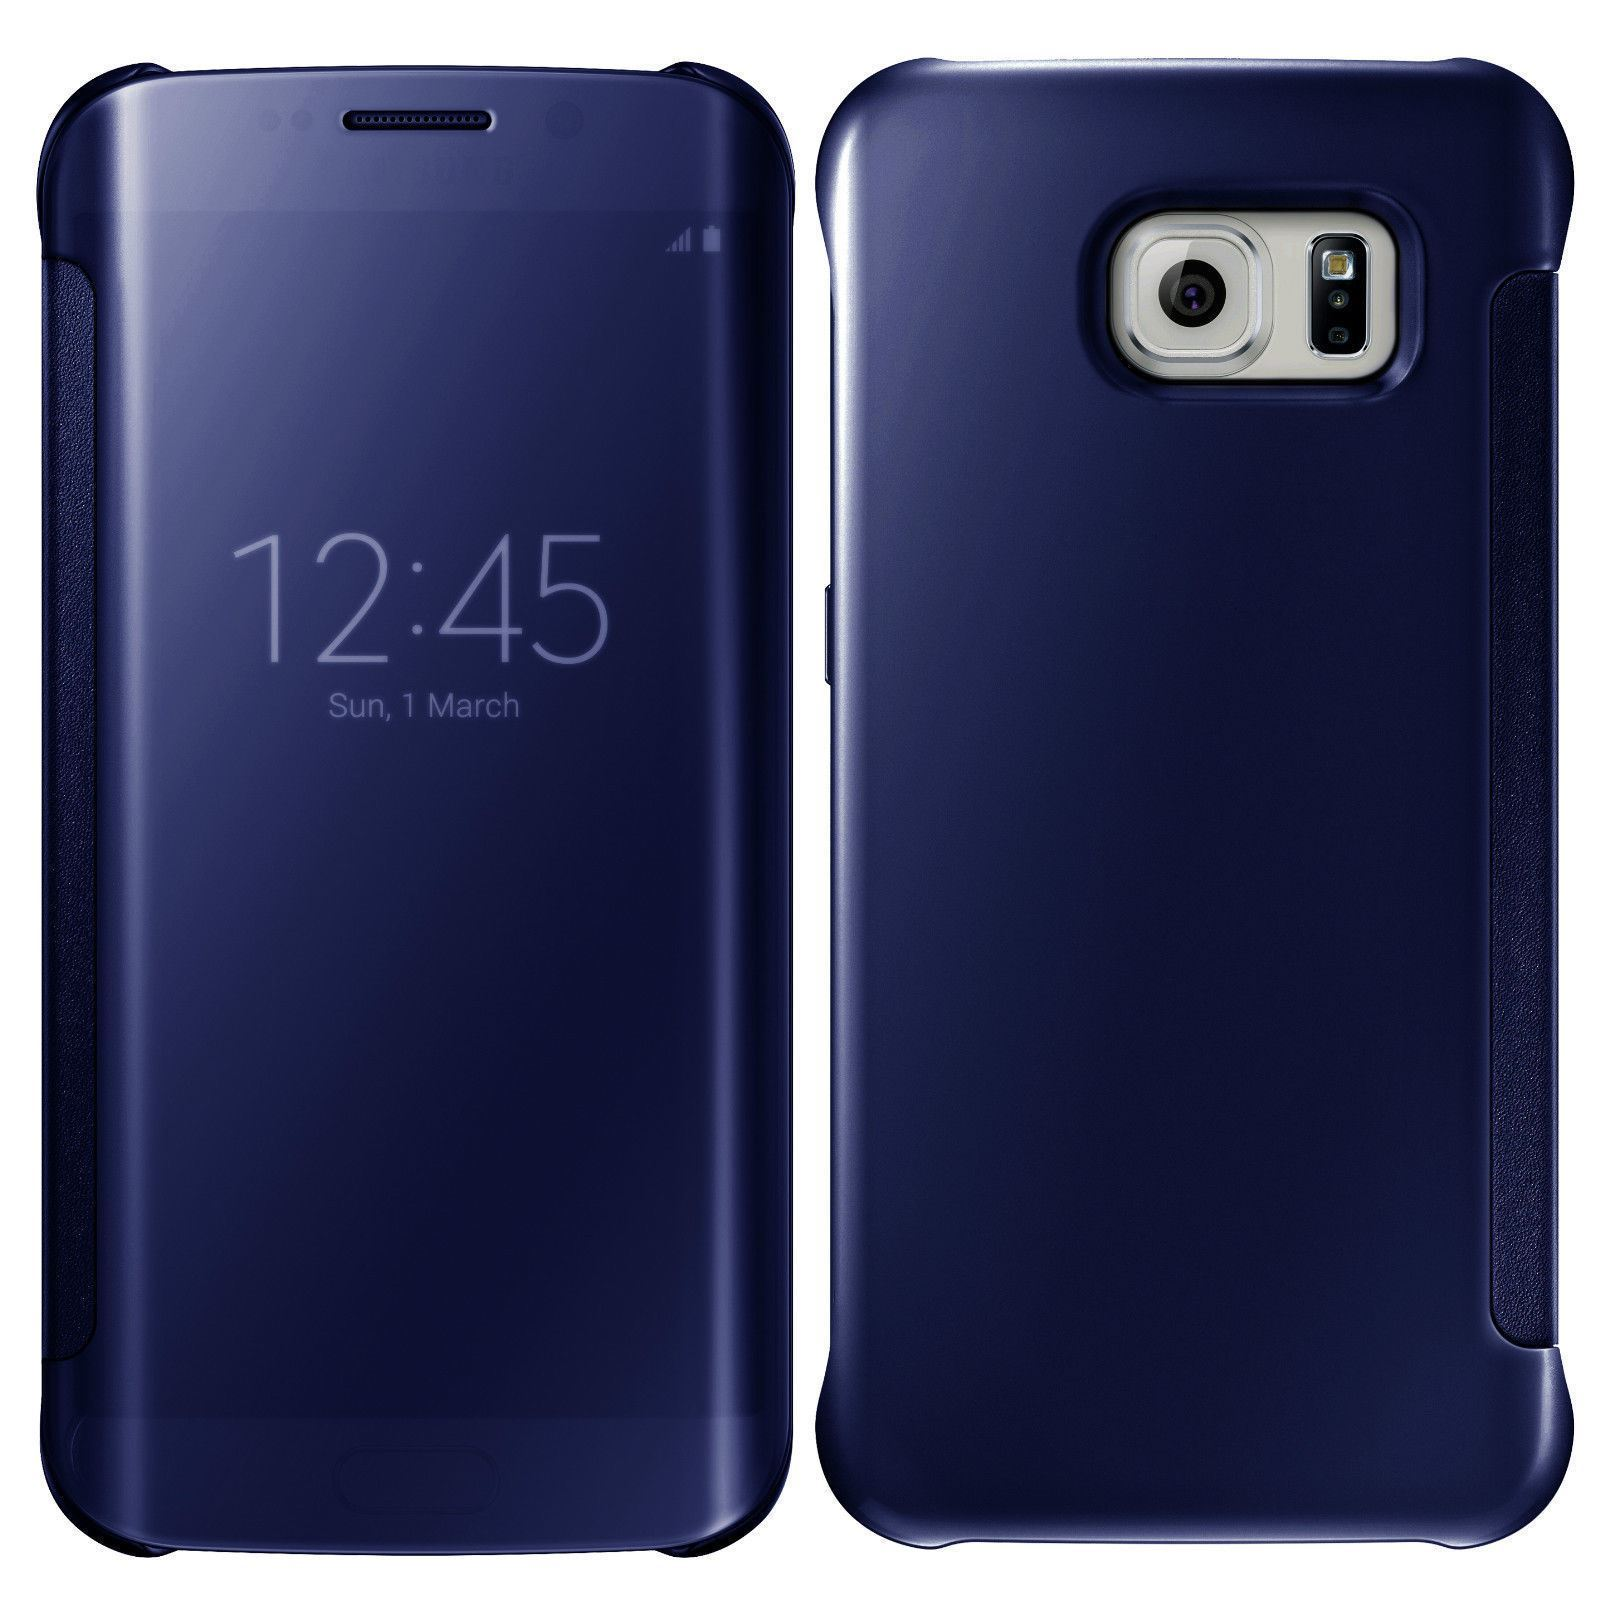 NEW-SAMSUNG-GALAXY-S7-S8-S9-S9-MIRROR-FLIP-CASE-COVER-WALLET-WITH-BUILT-IN-CHIP